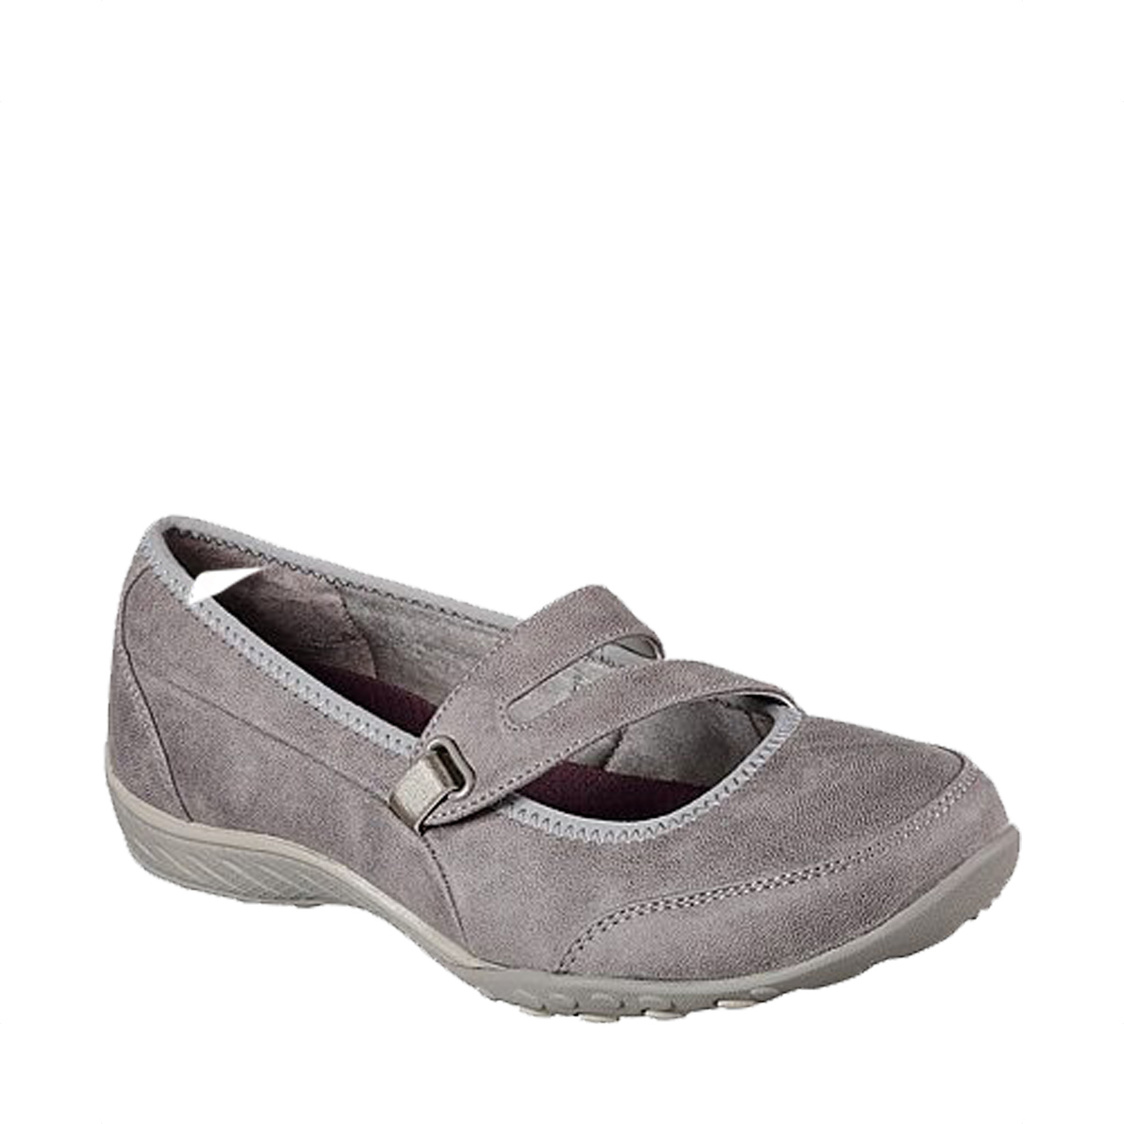 Relaxed Fit  Breathe Easy - Calmly 23209 - Taupe